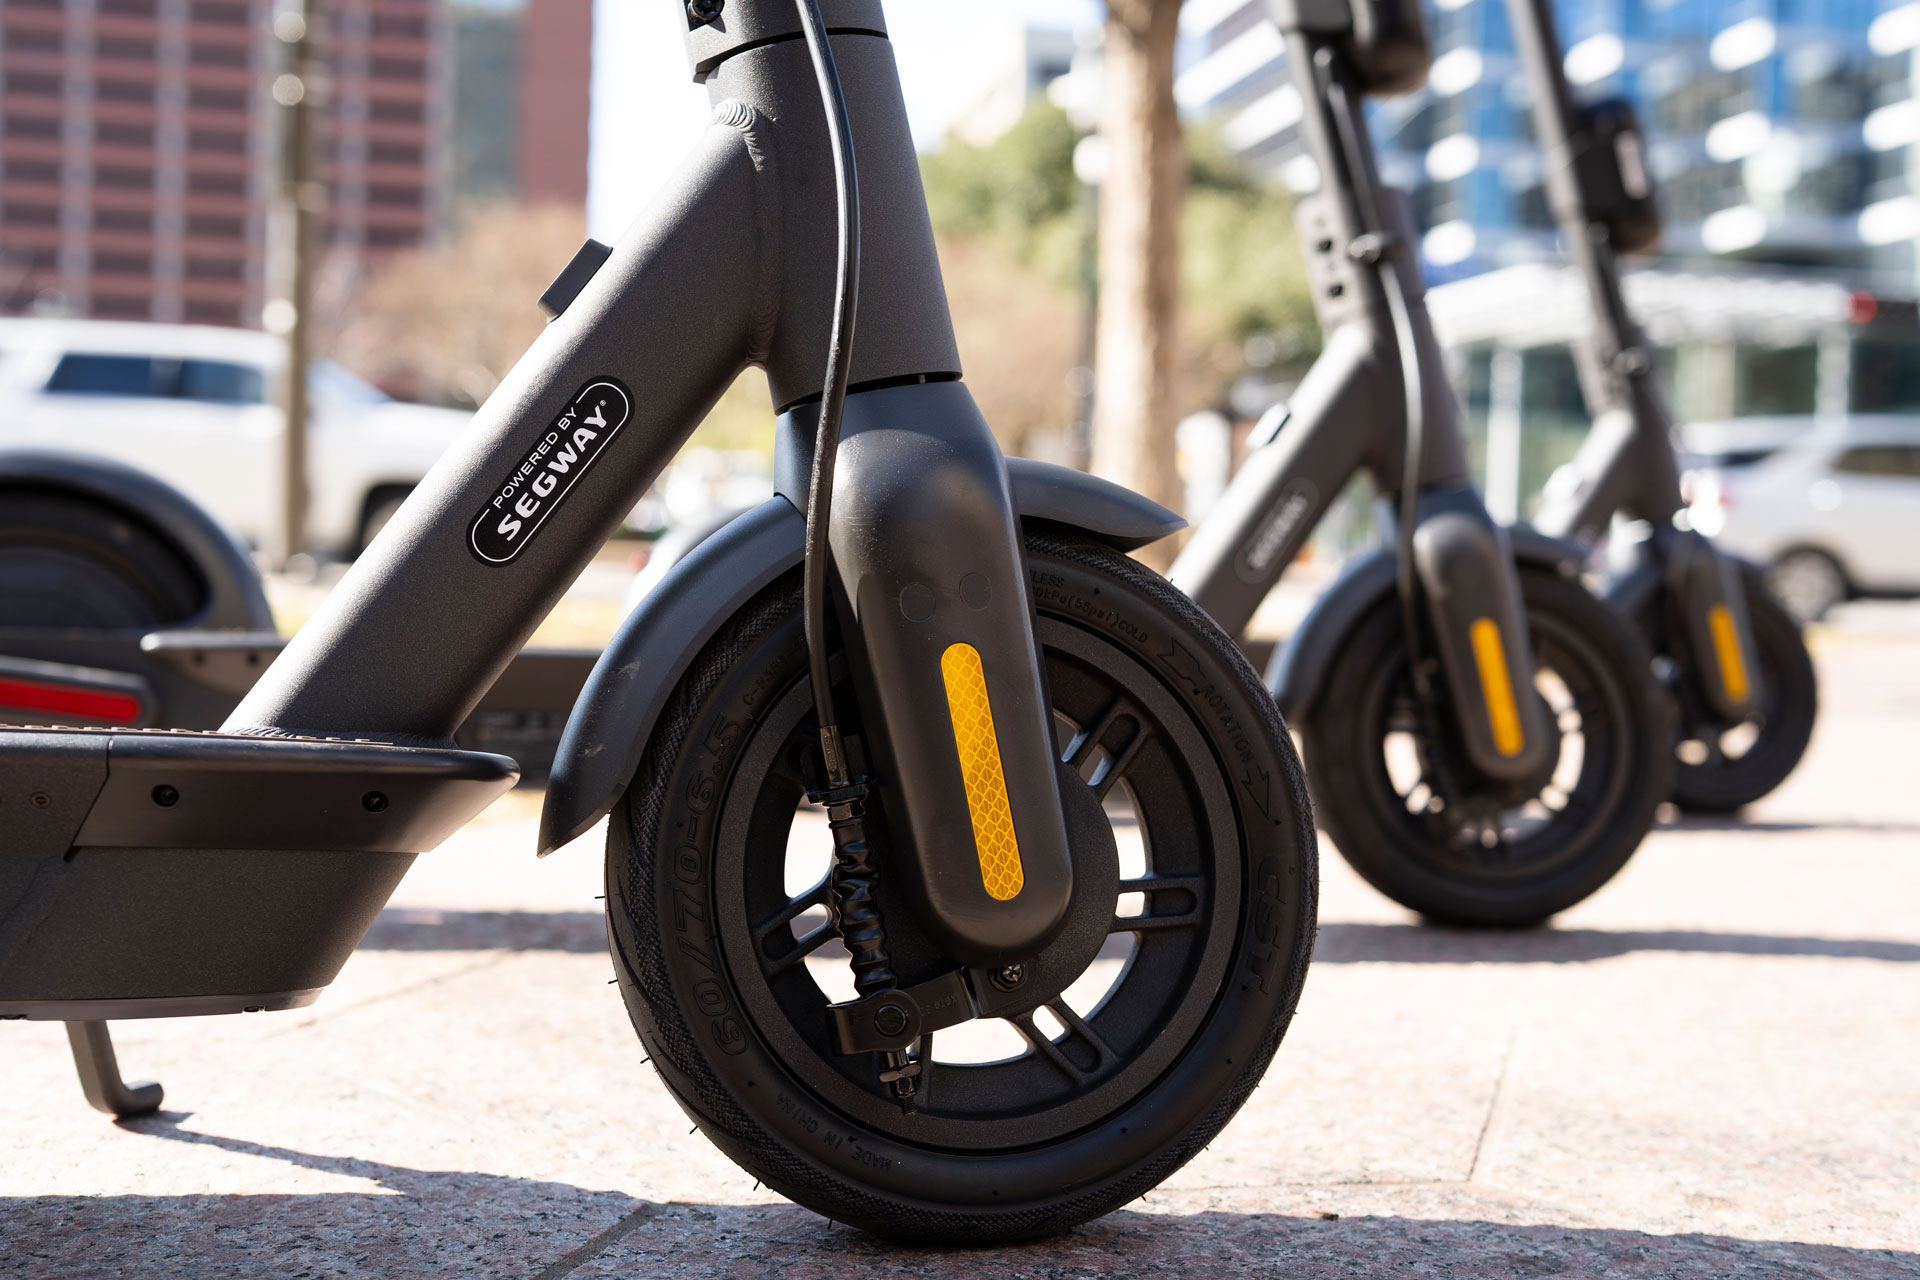 max series shared scooters